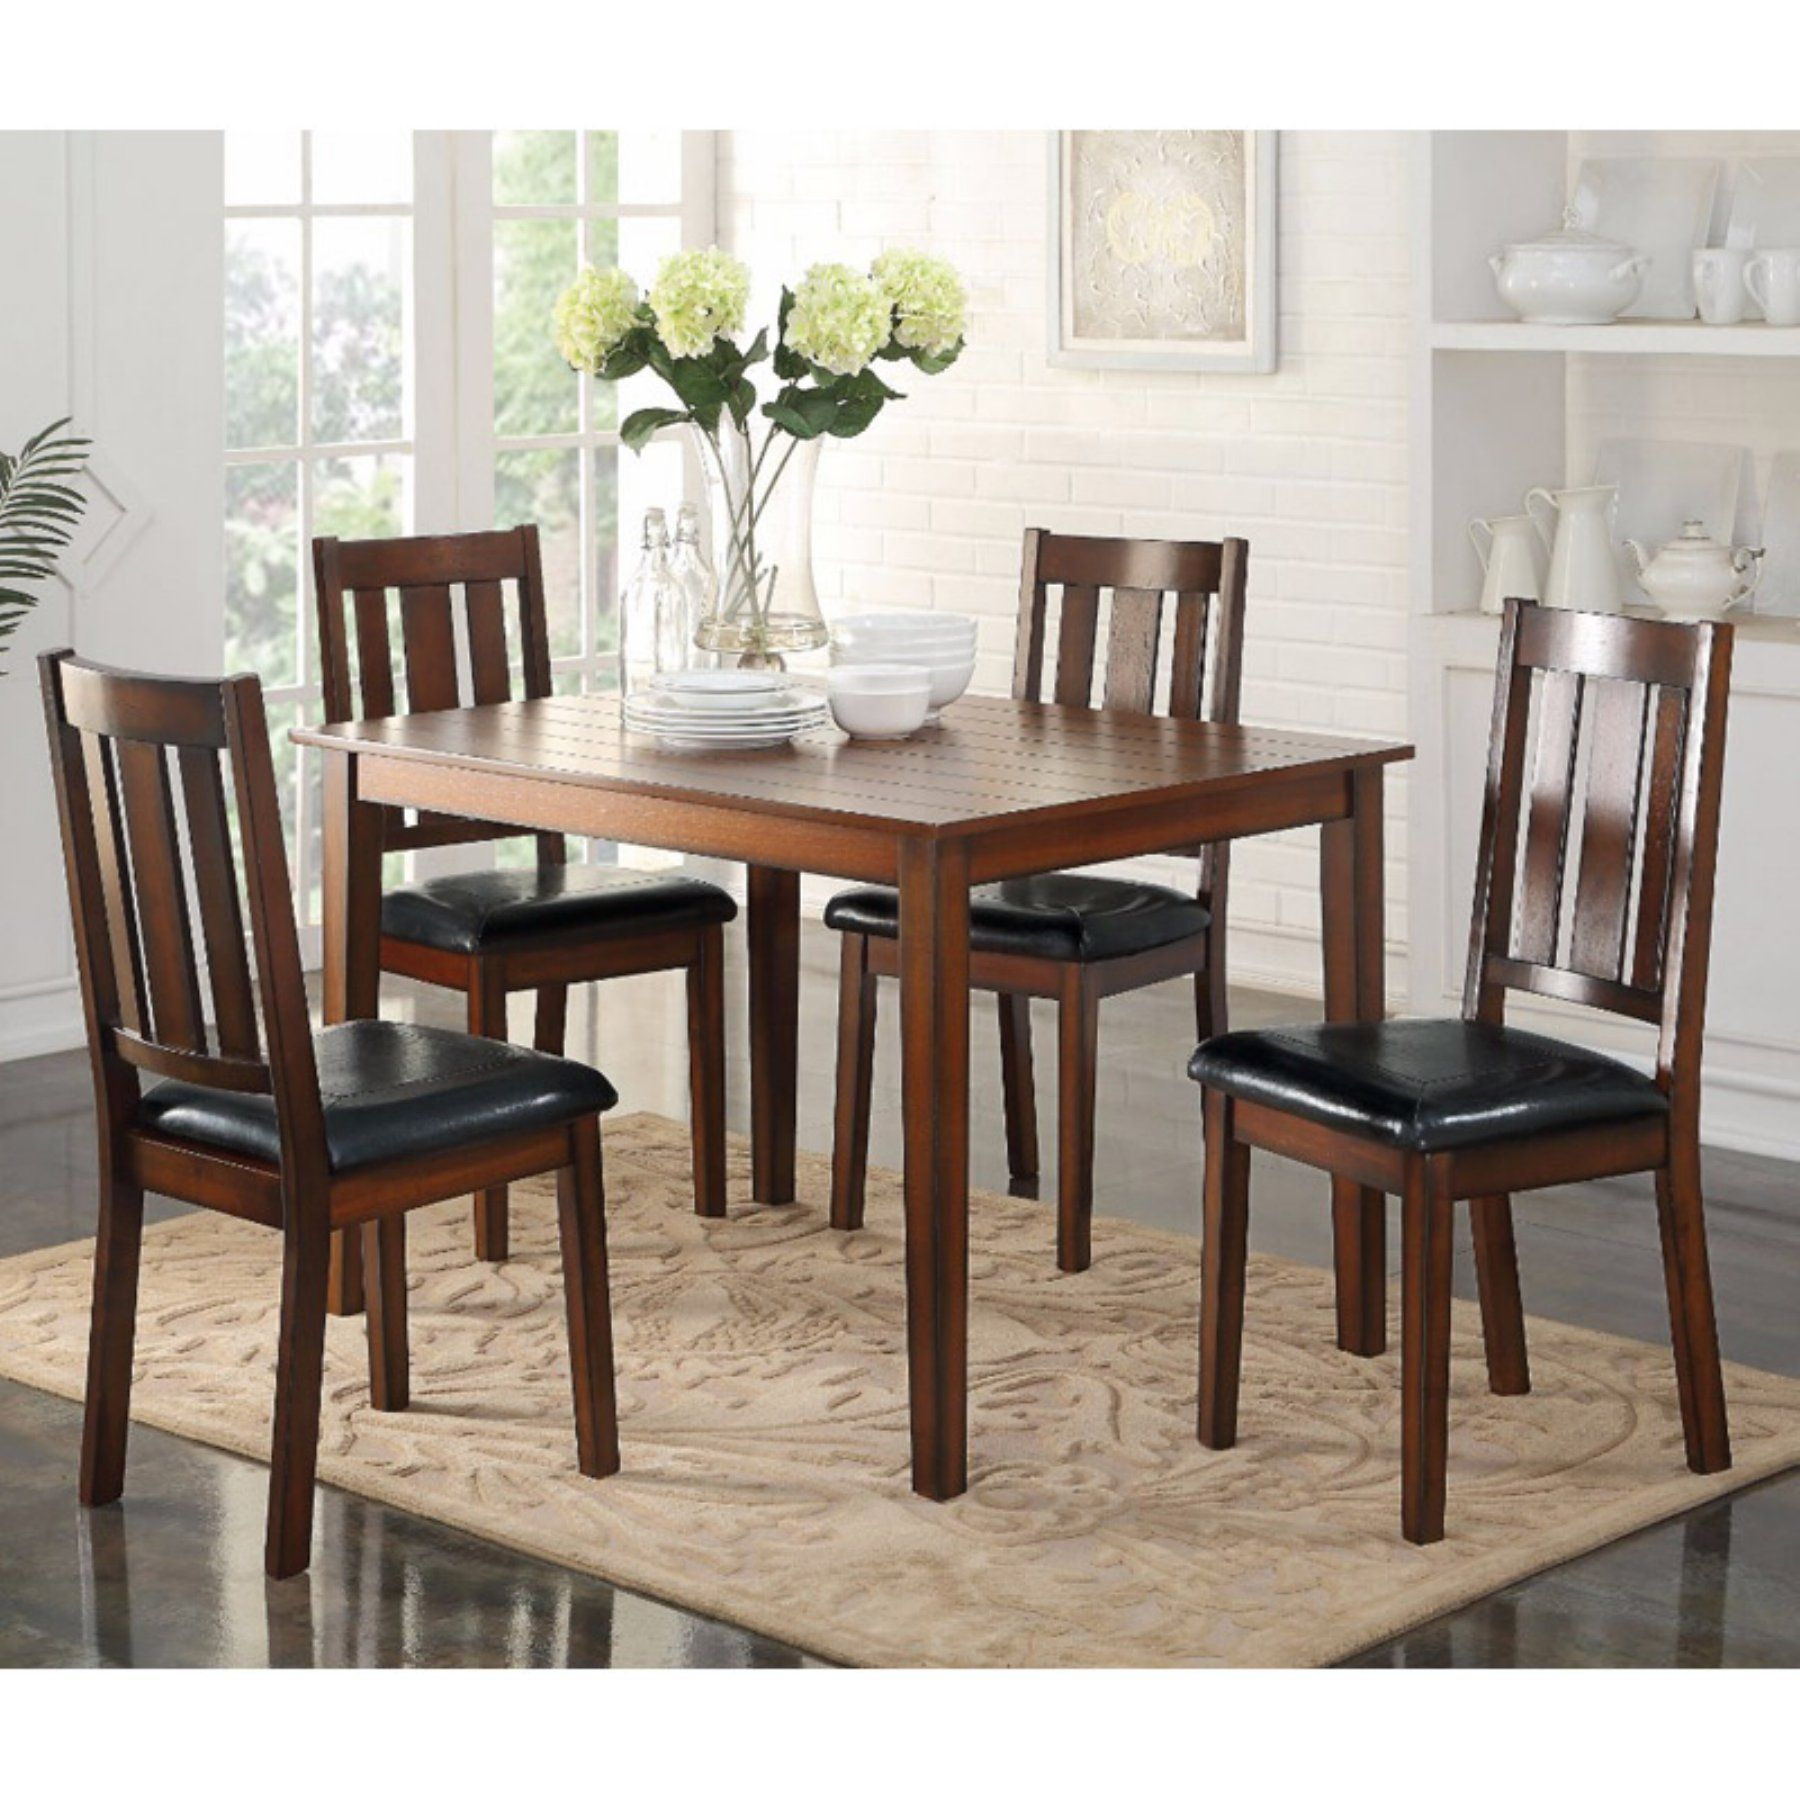 Benzara Stylish Wooden 5 Piece Square Dining Table Set Square